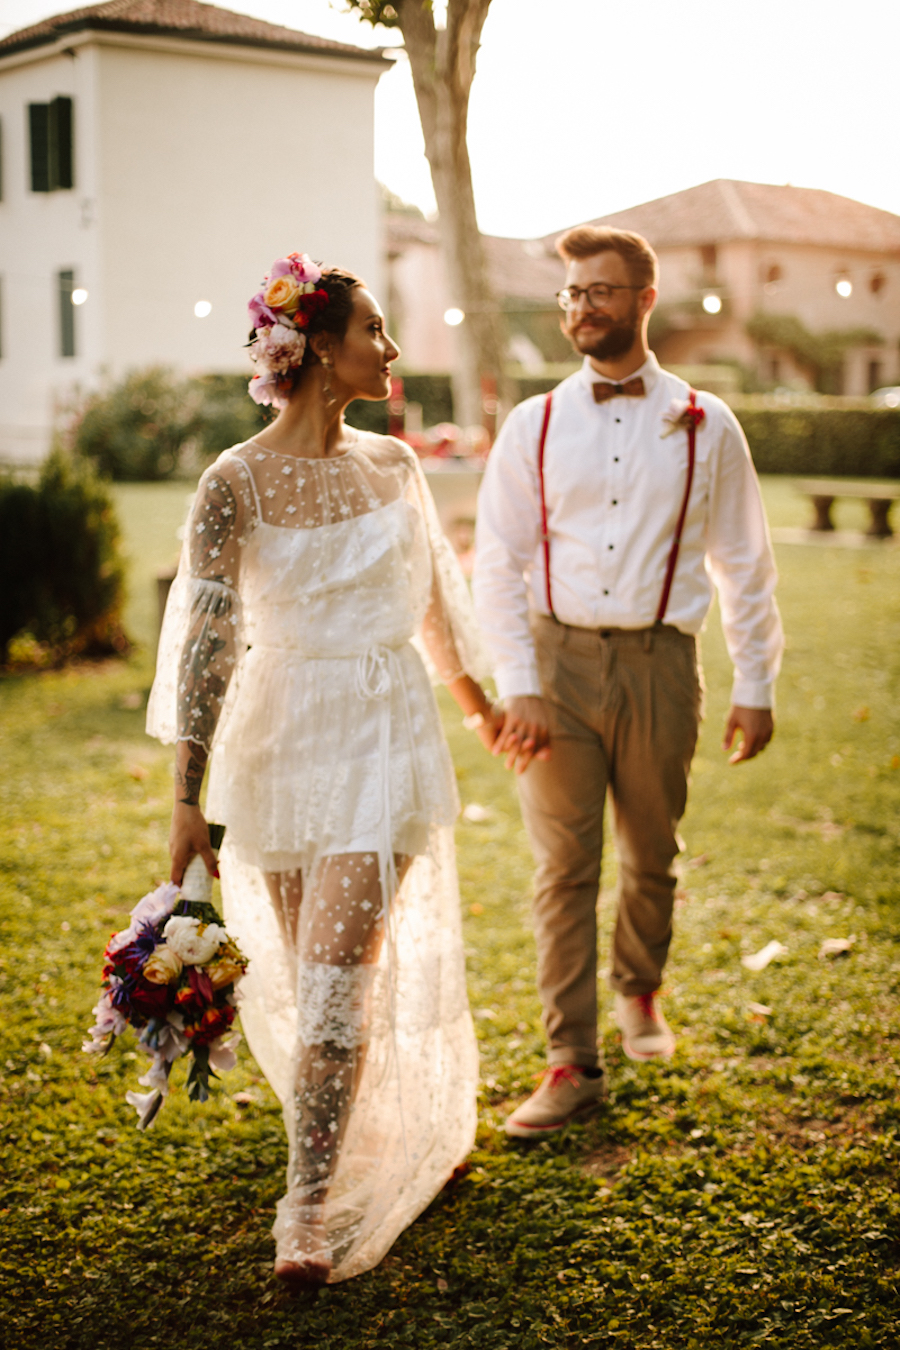 matrimonio boho chic messicano